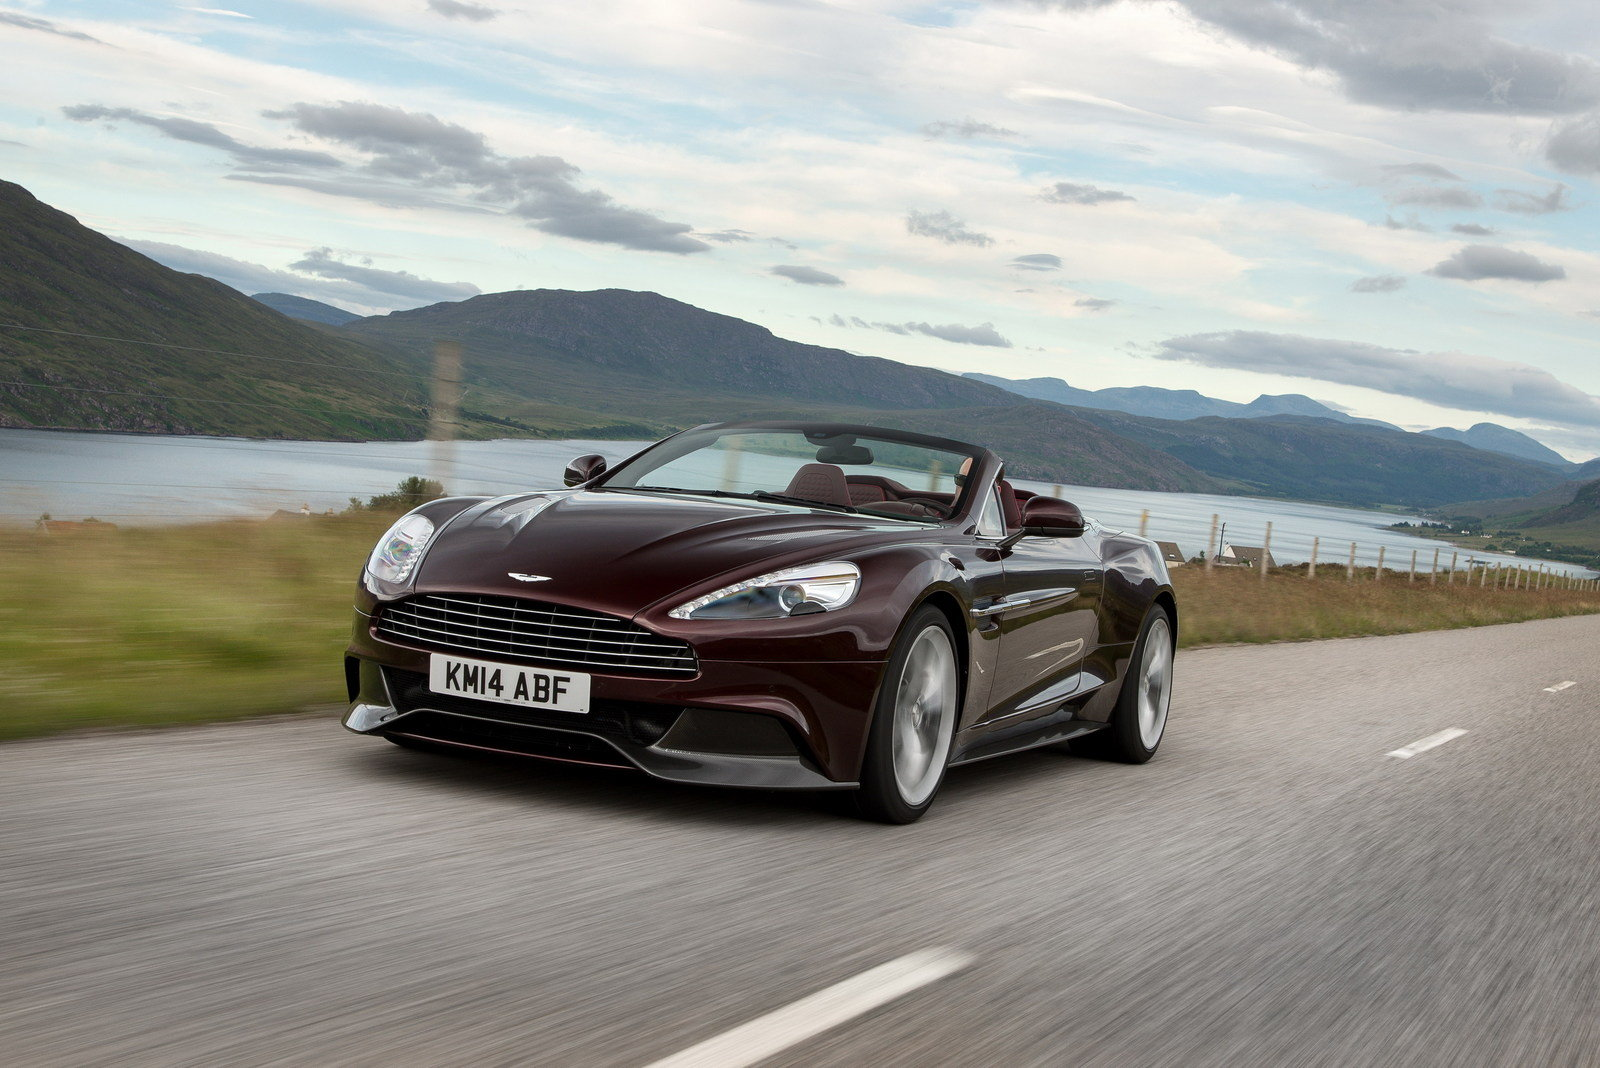 2014 - 2015 Aston Martin Vanquish Volante Review - Top Speed